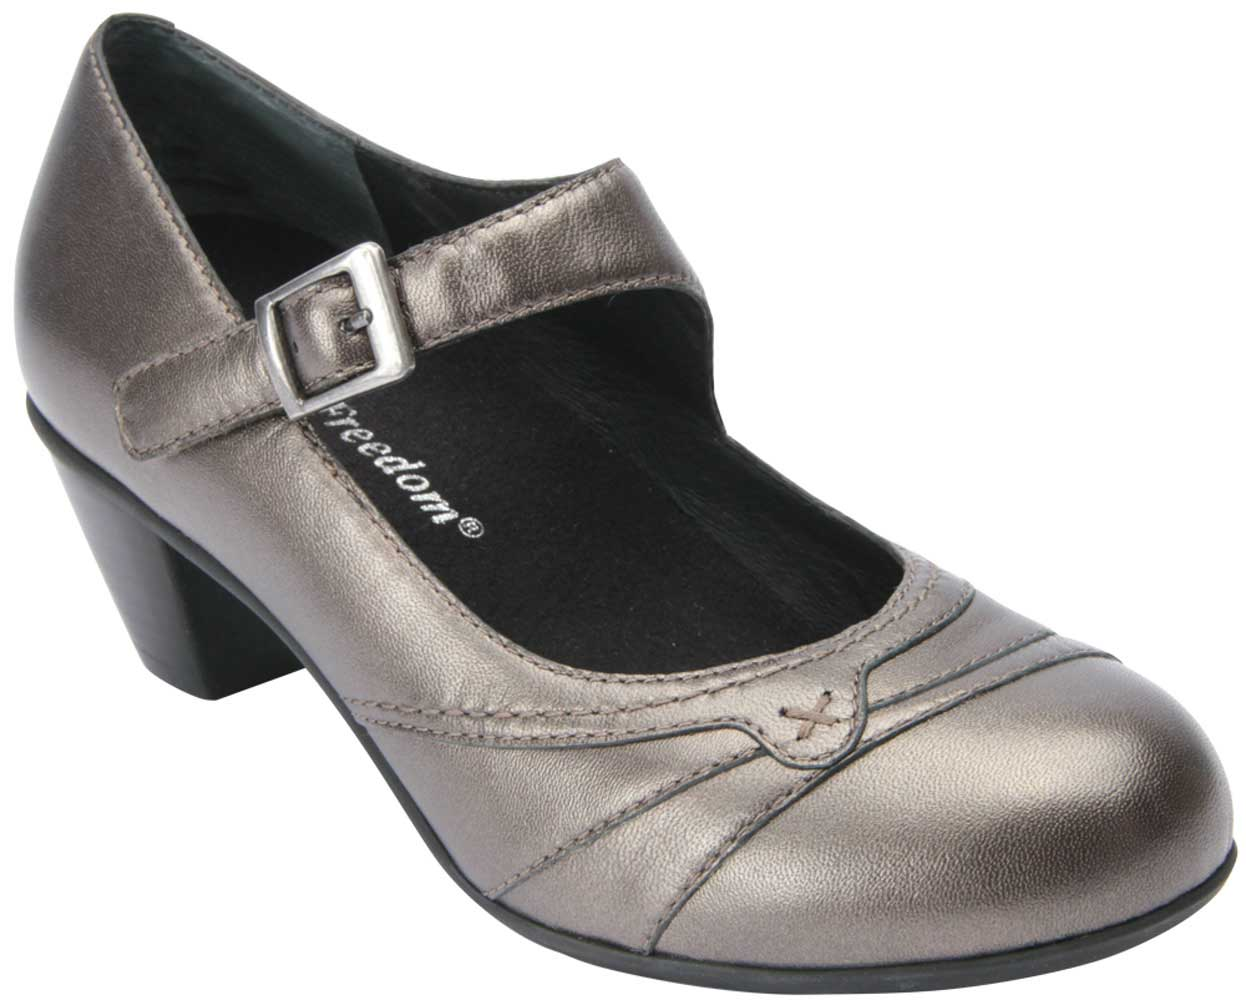 Women S Dress Shoes With Removable Insoles For Orthotics